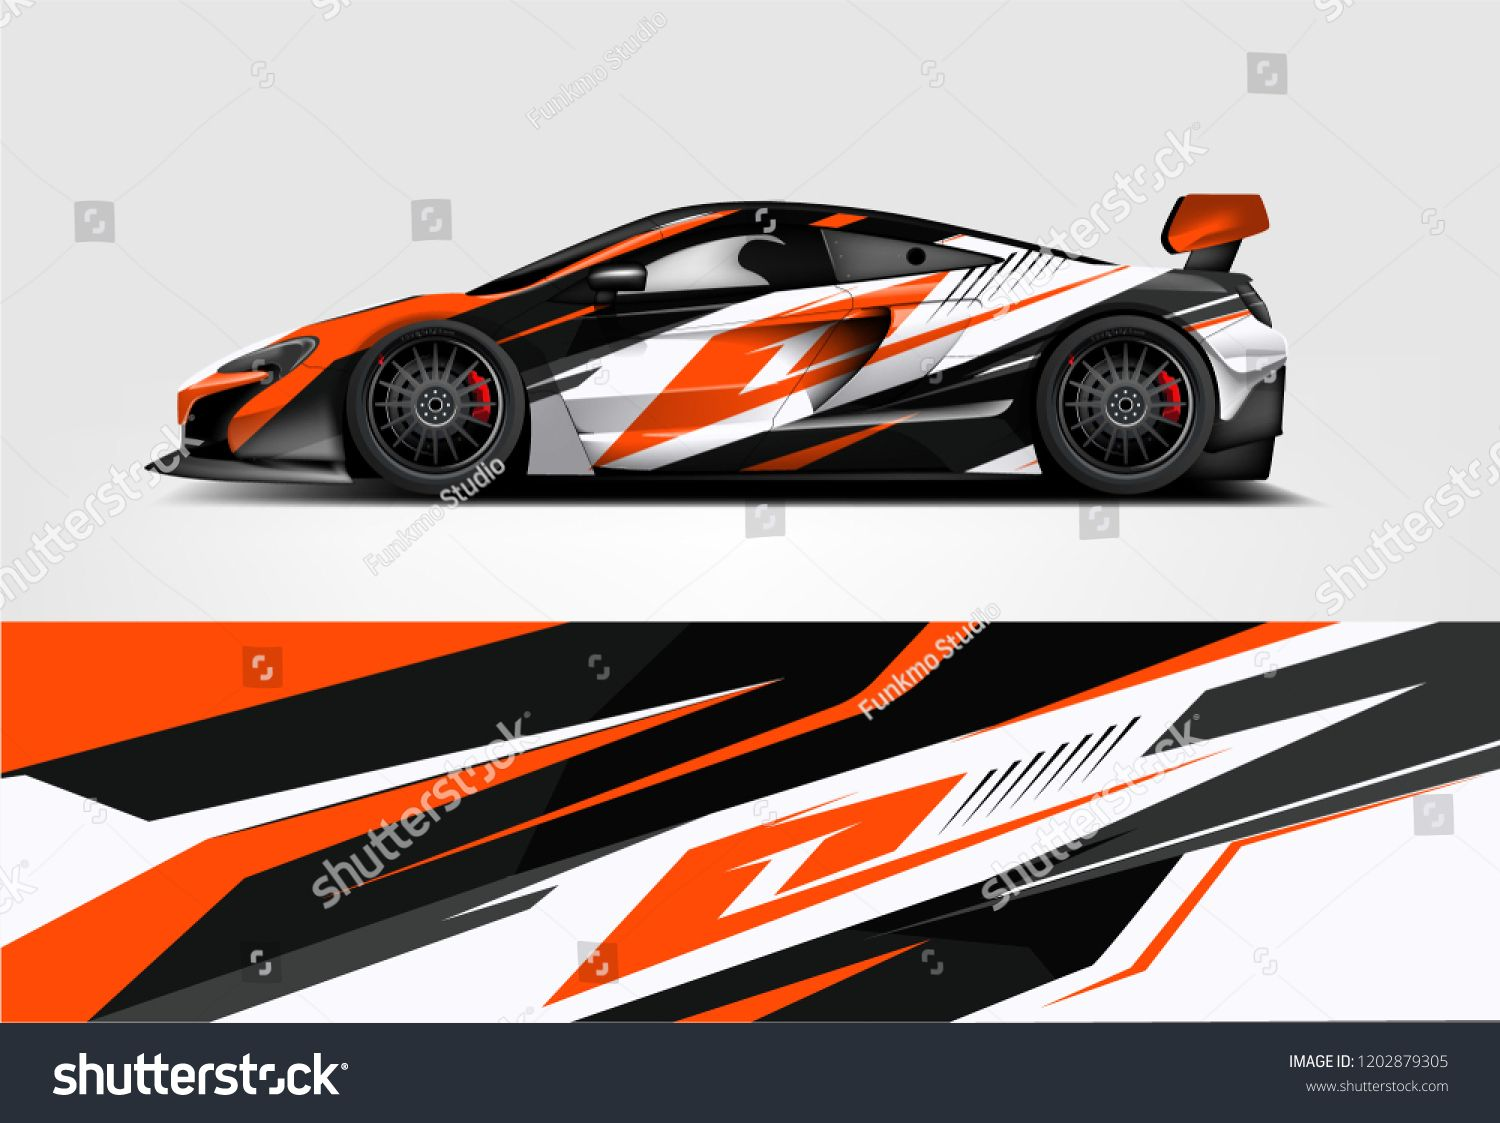 Car Decal Wrap Design Vector Graphic Abstract Stripe Racing Background Kit Designs For Vehicle Race Car Car Sticker Design Car Wrap Design Racing Car Design [ 1123 x 1500 Pixel ]